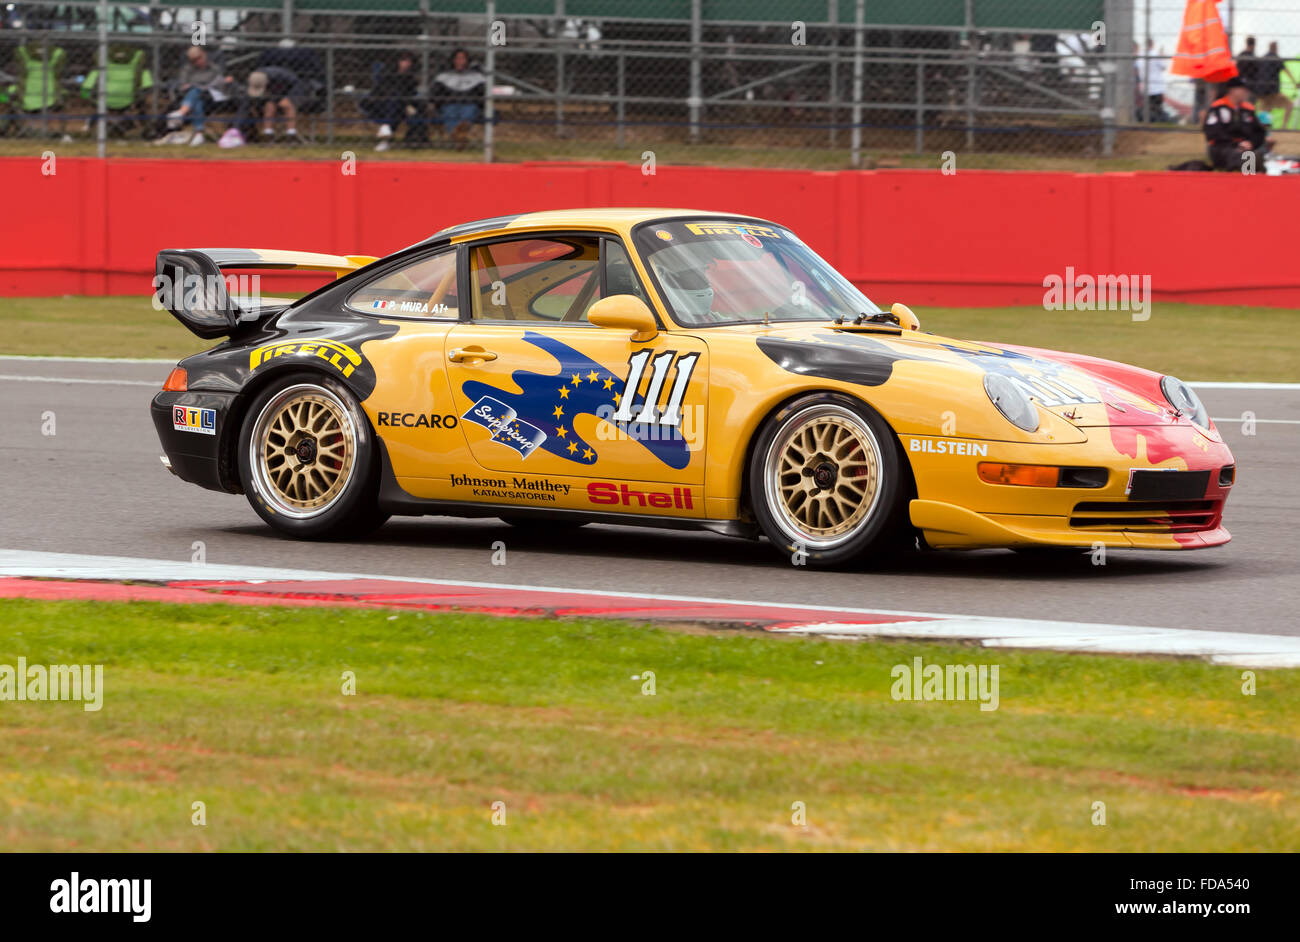 a porsche 993 gt2 racing car during a demonstration. Black Bedroom Furniture Sets. Home Design Ideas